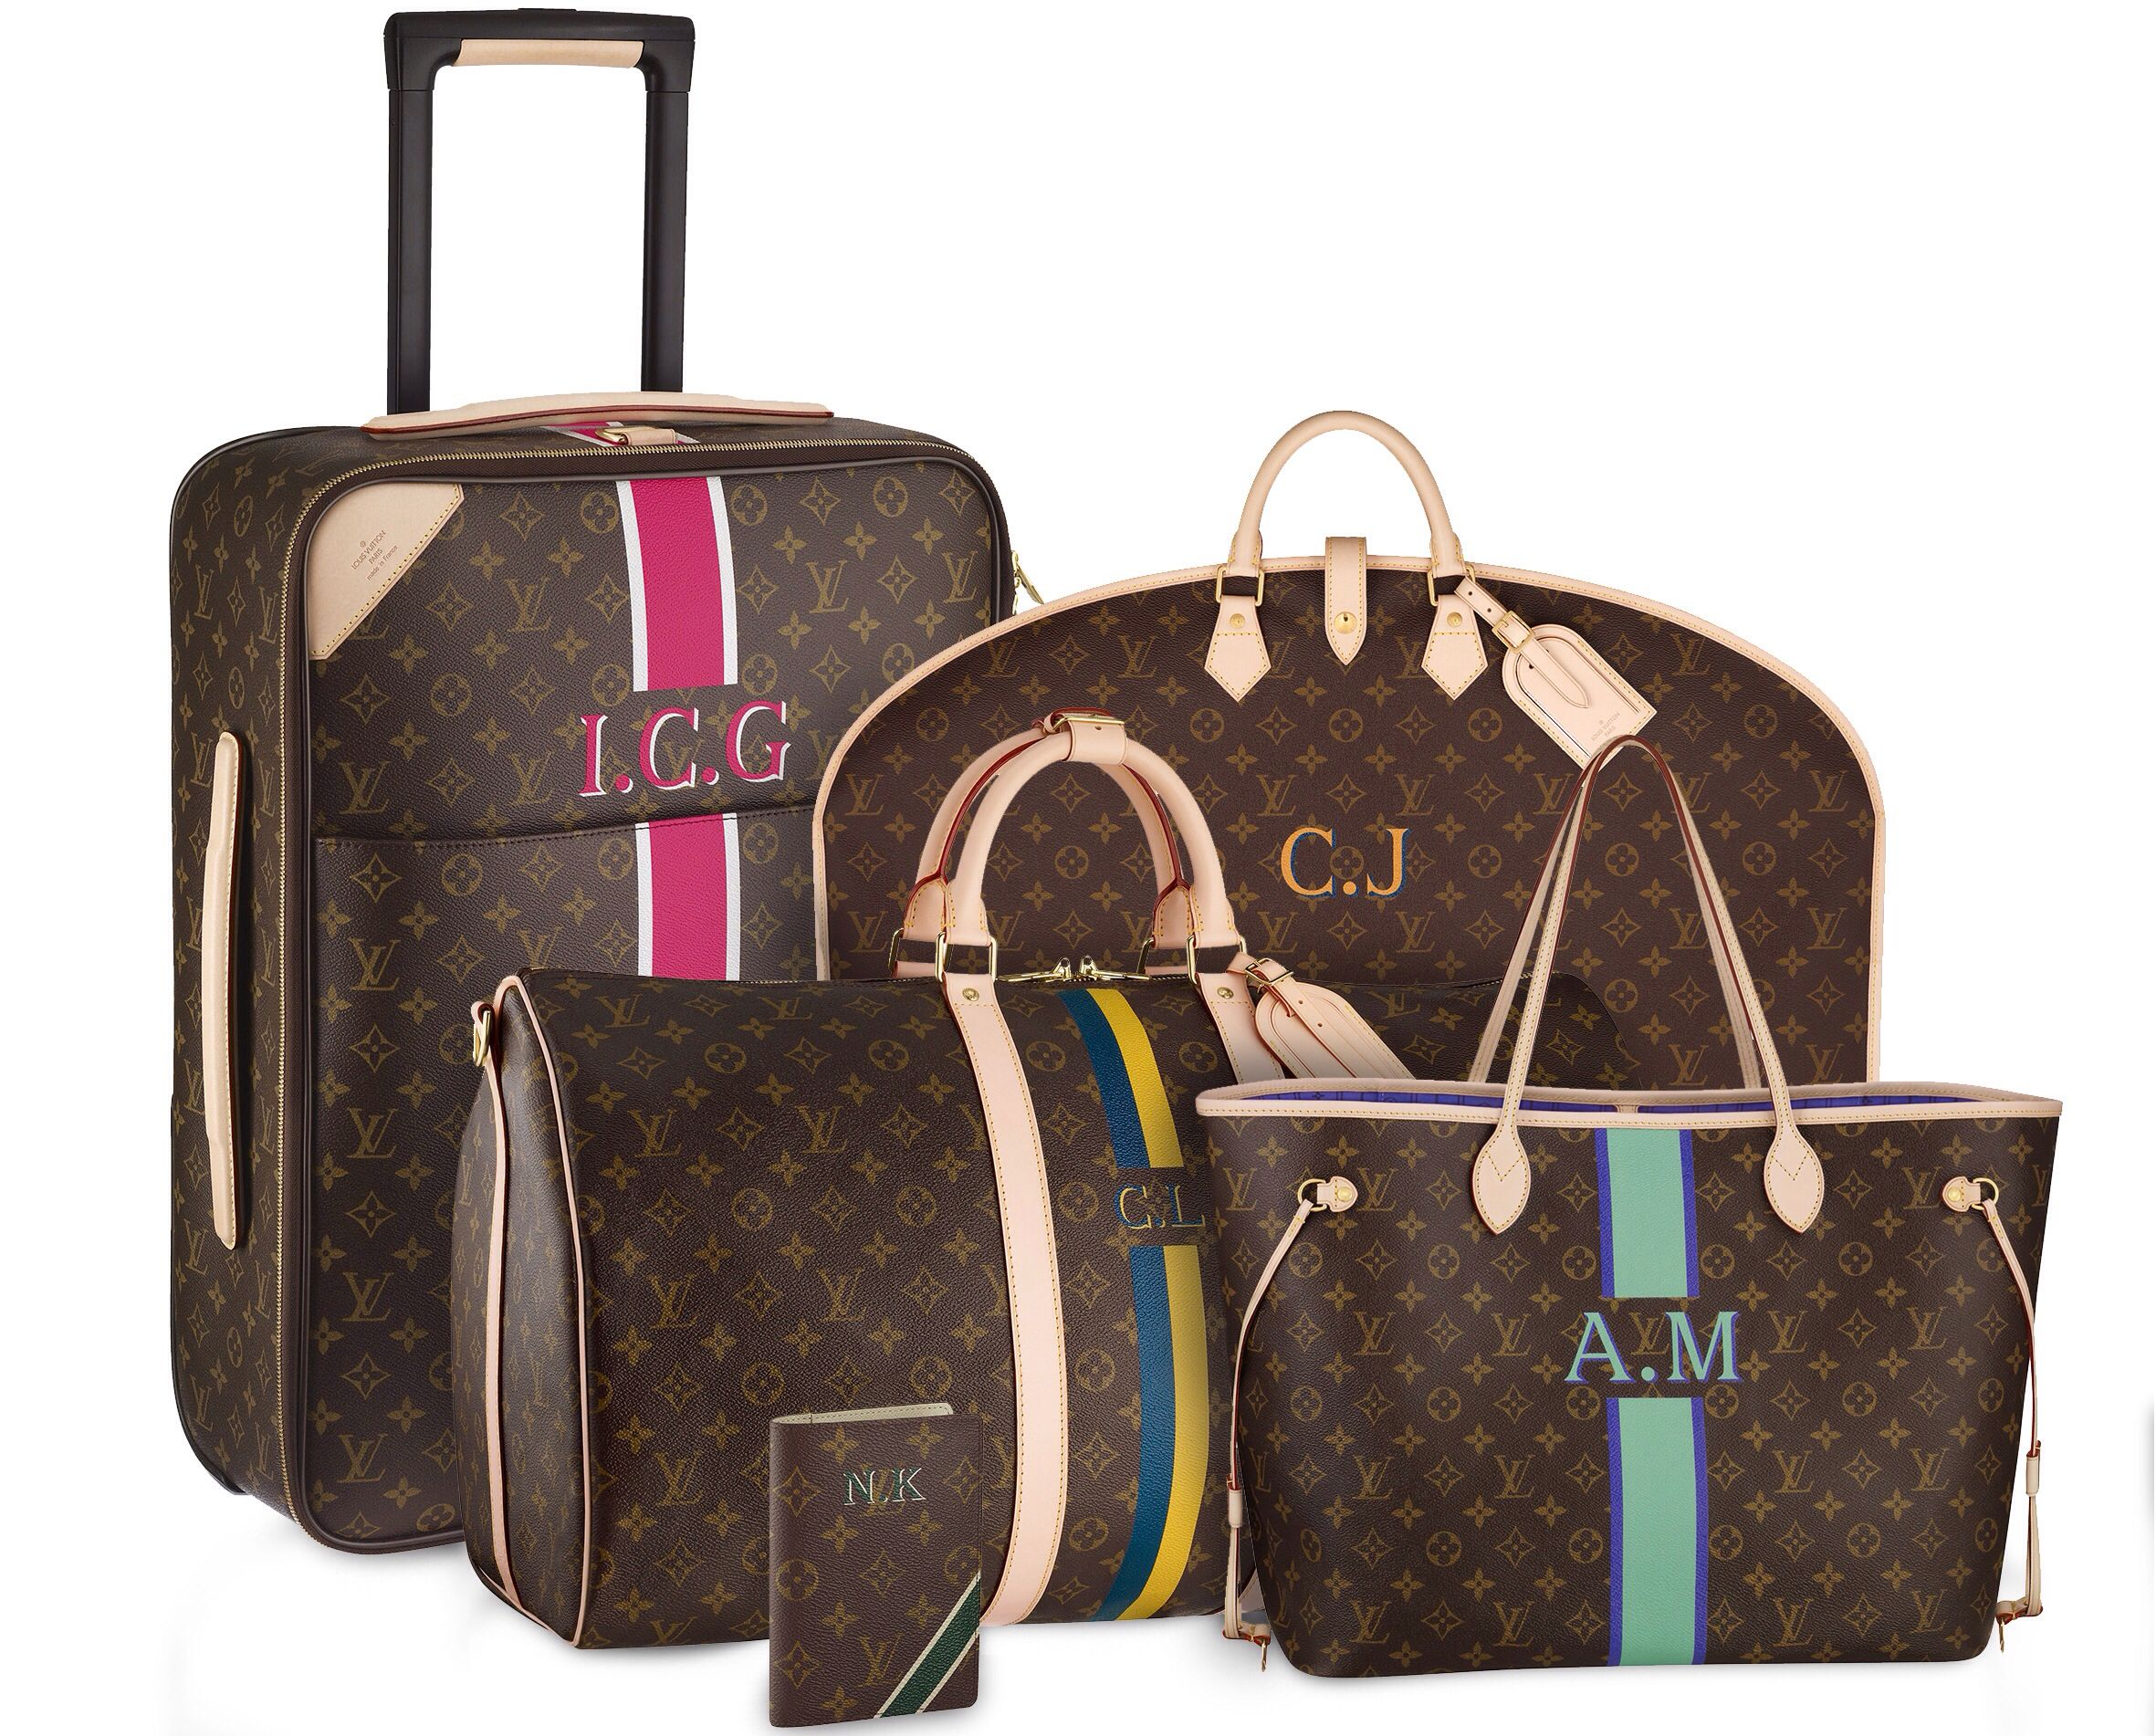 Louis Vuitton travel bag set! | Women's Fashion | Pinterest | A ...